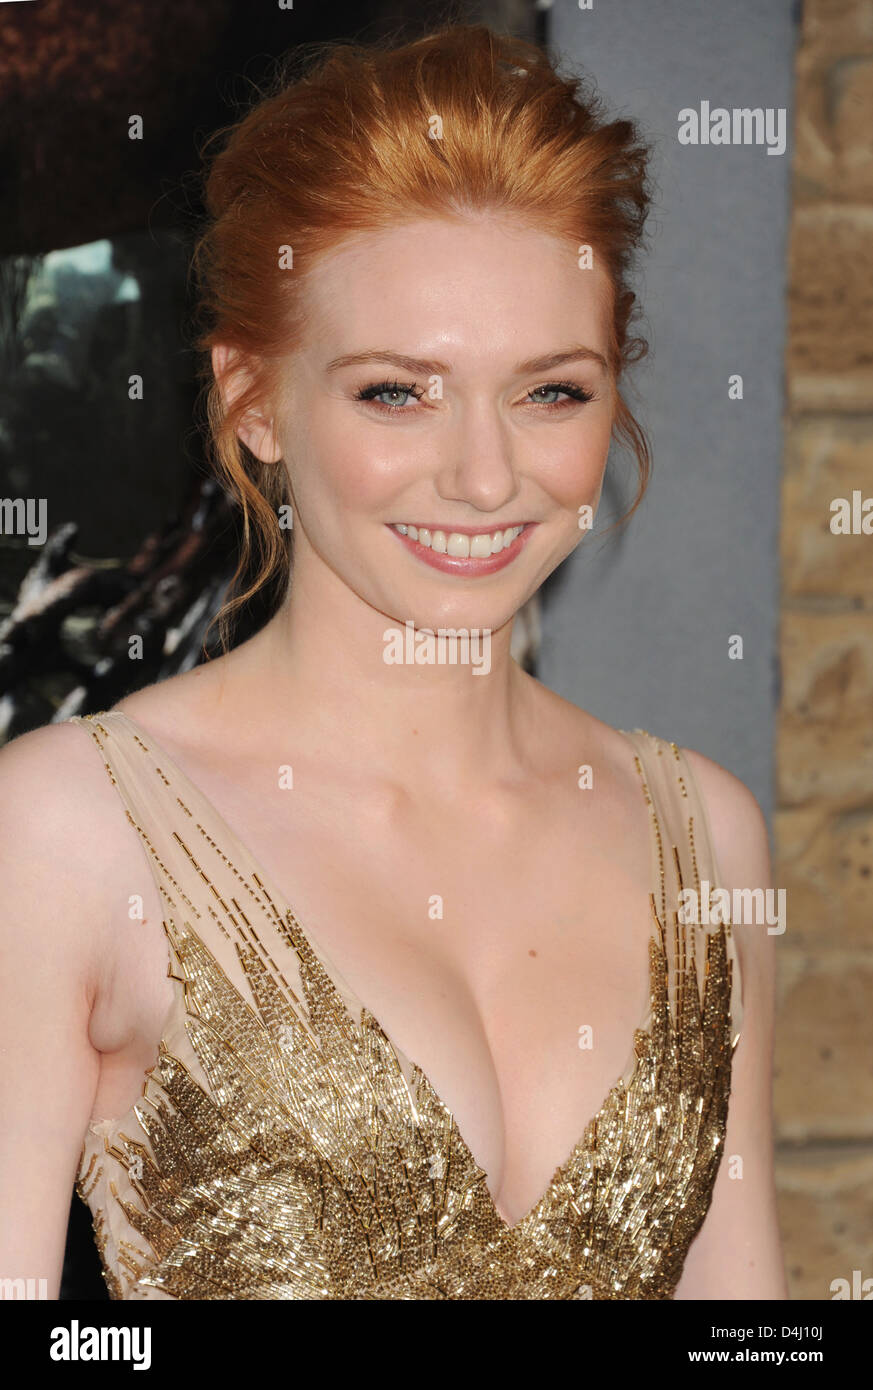 Eleanor Tomlinson nude (69 photo), hacked Topless, Twitter, underwear 2017